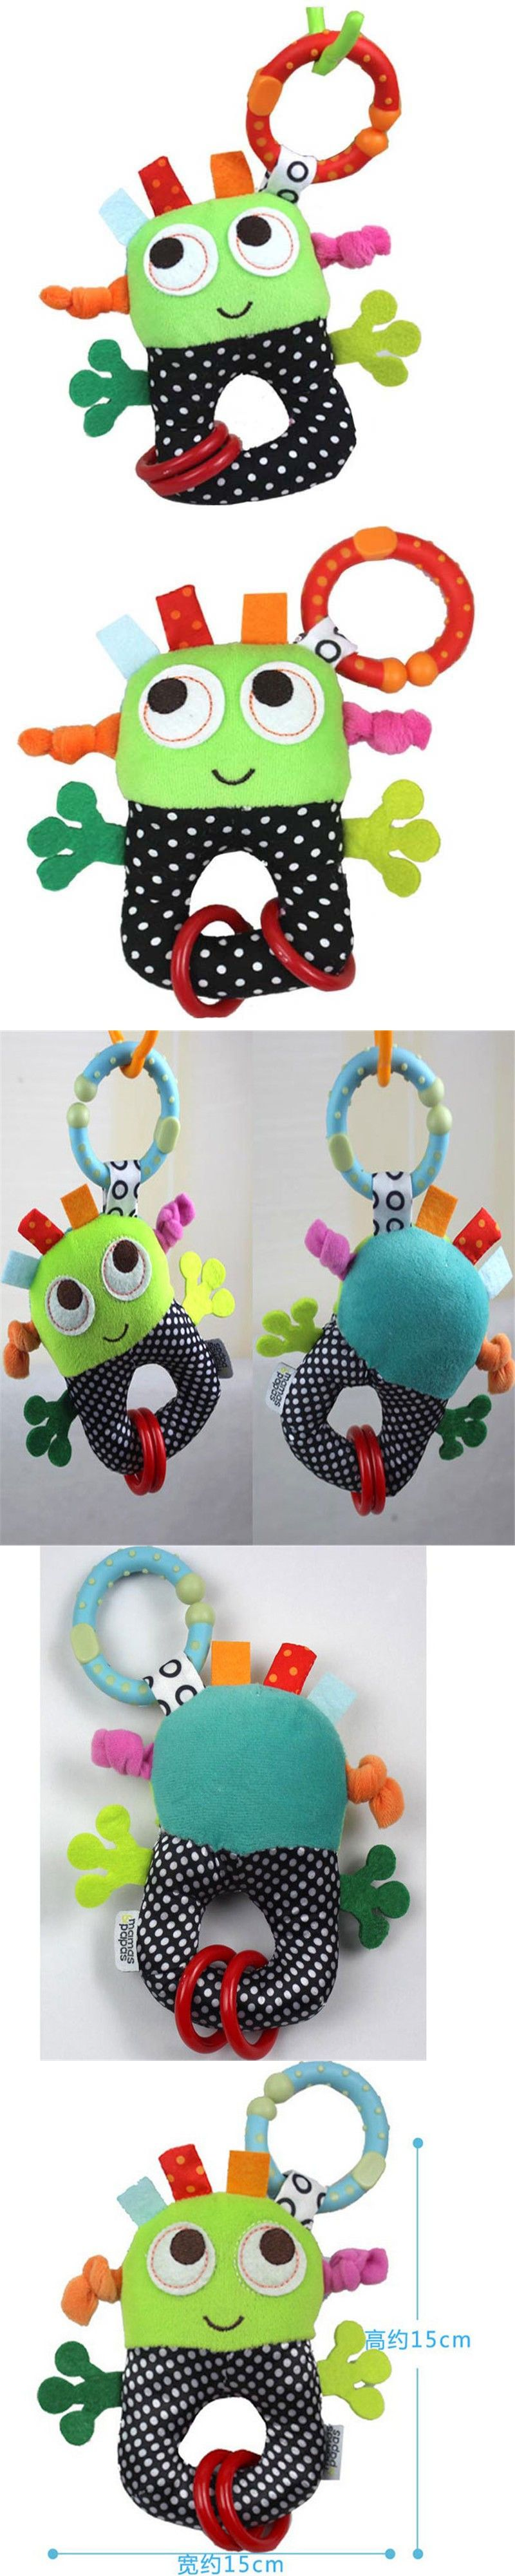 baby rattles toys small robots hanging infant Bell rubber ring pip